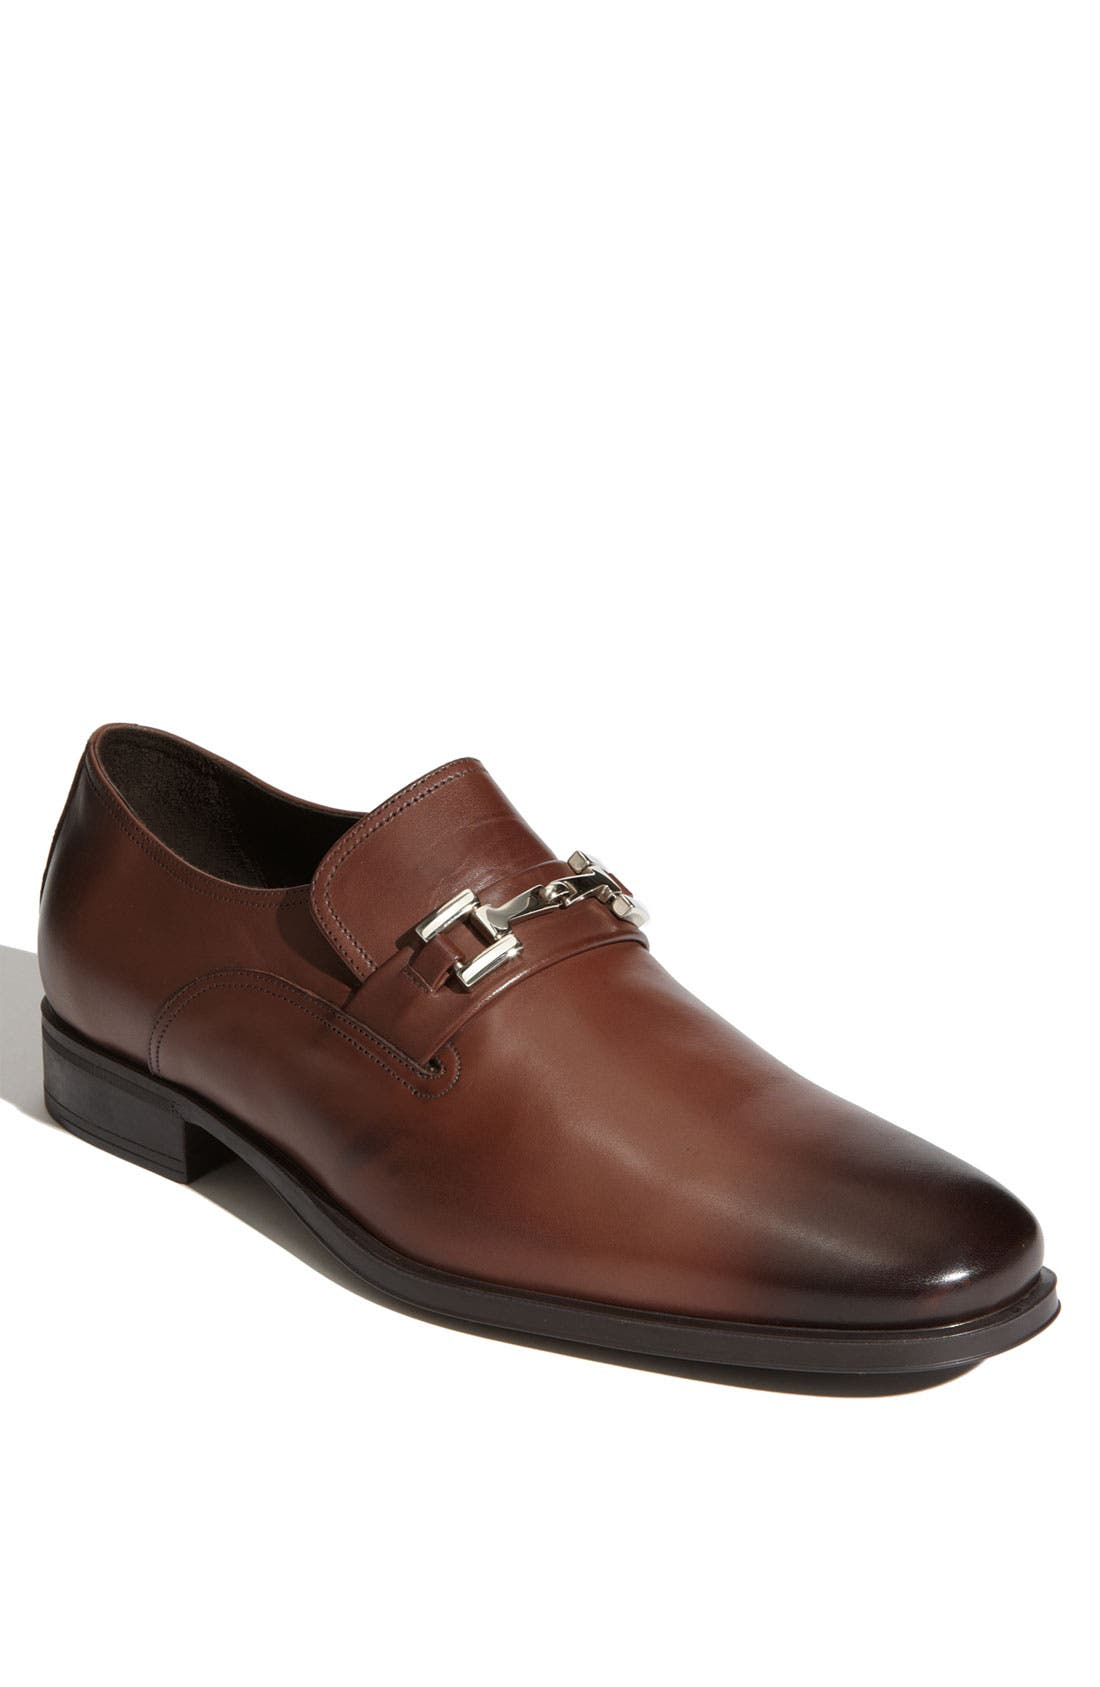 Alternate Image 1 Selected - Bruno Magli 'Gulliver' Bit Loafer